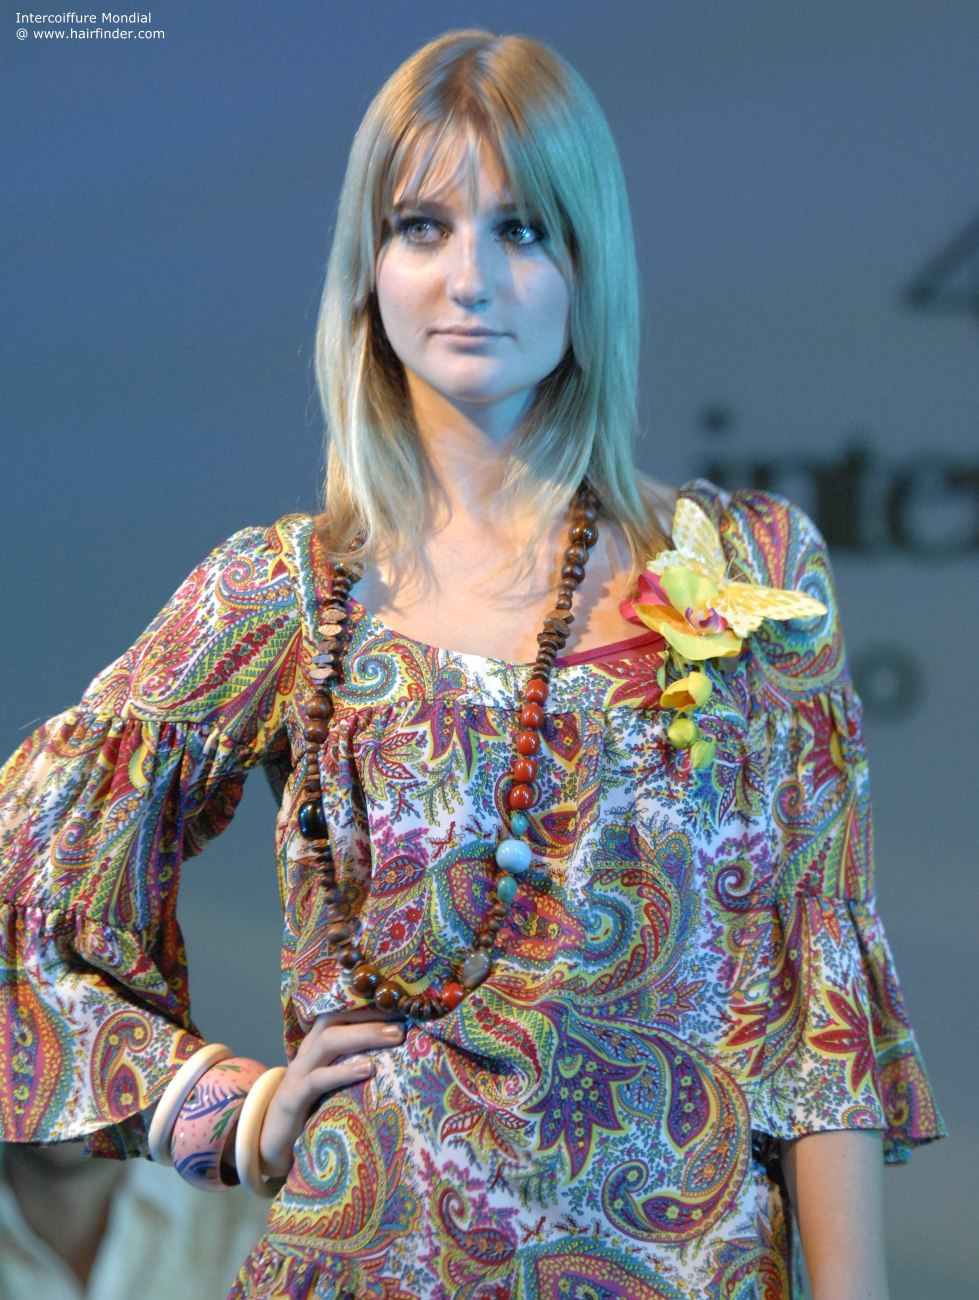 Piecy Bangs For Hair Around The Shoulders A Chinline Crop